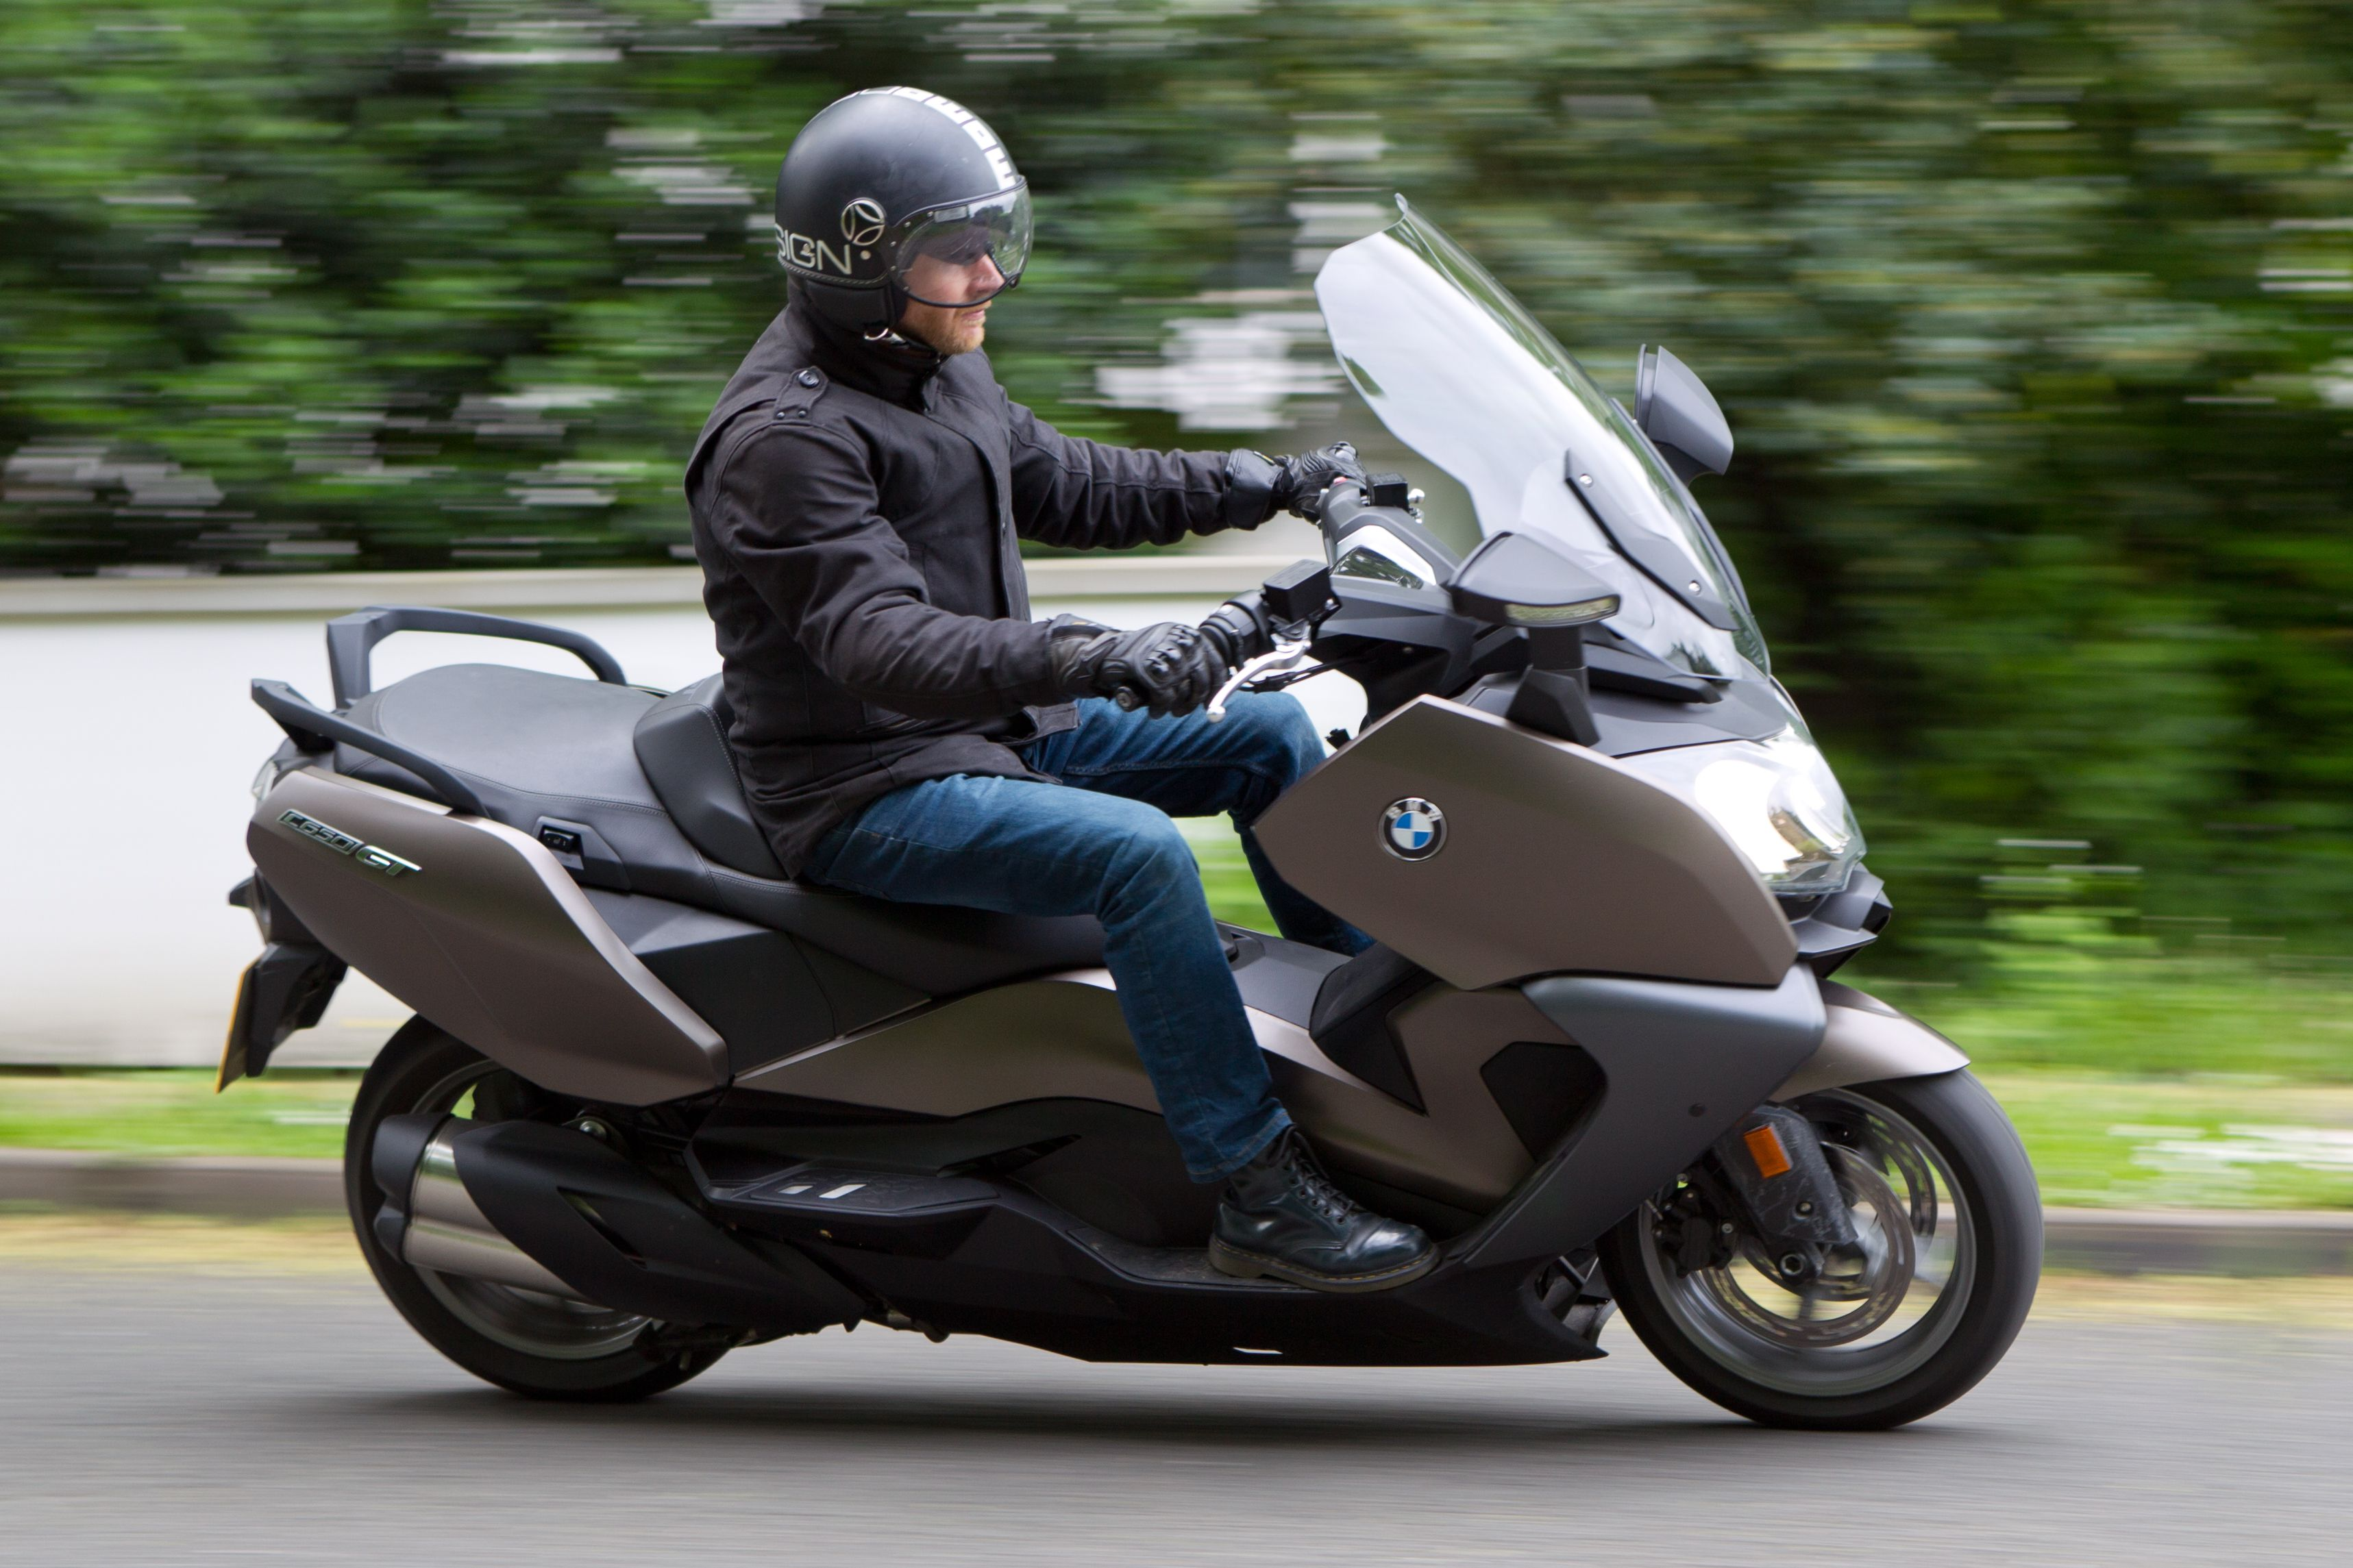 bmw c650 gt and bmw c650 sport review visordown. Black Bedroom Furniture Sets. Home Design Ideas